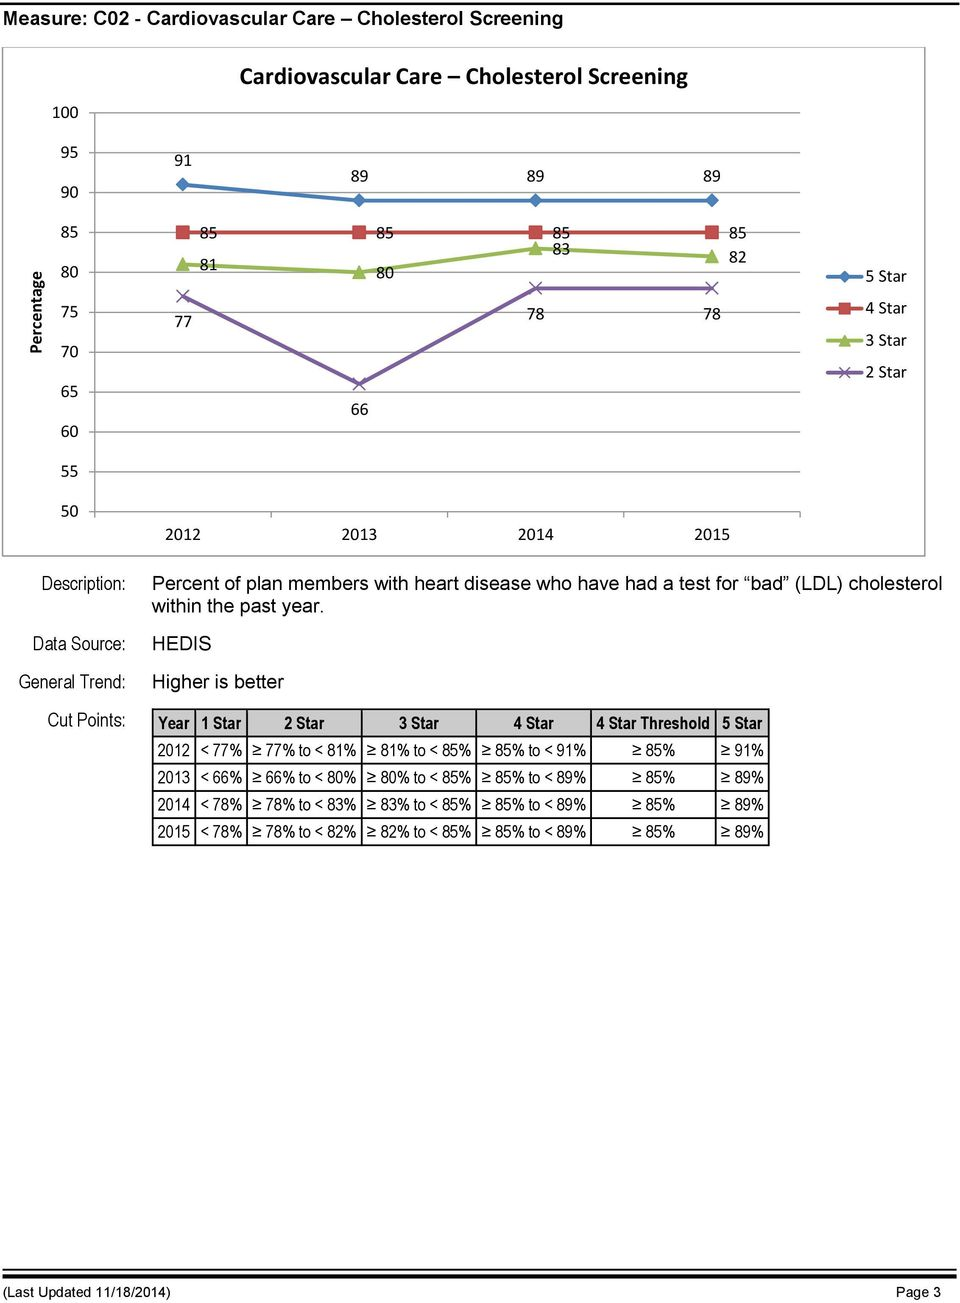 HEDIS Cut Points: Year 1 Star Threshold 2012 < 77% 77% to < 81% 81% to < 85% 85% to < 91% 85% 91% 2013 < 66% 66% to < % % to < 85% 85% to <